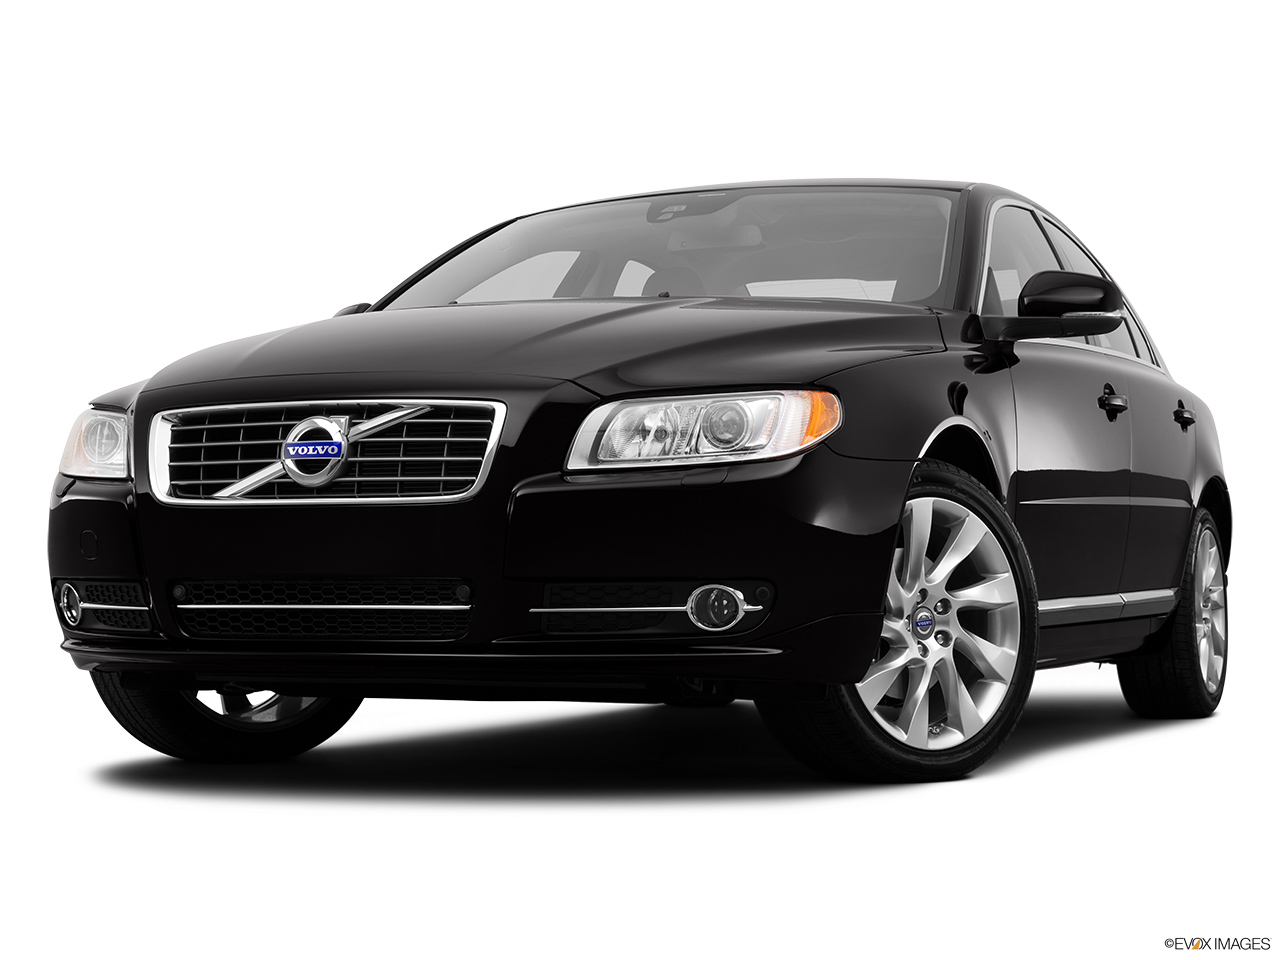 2013 Volvo S80 3.2 Platinum Front angle view, low wide perspective.